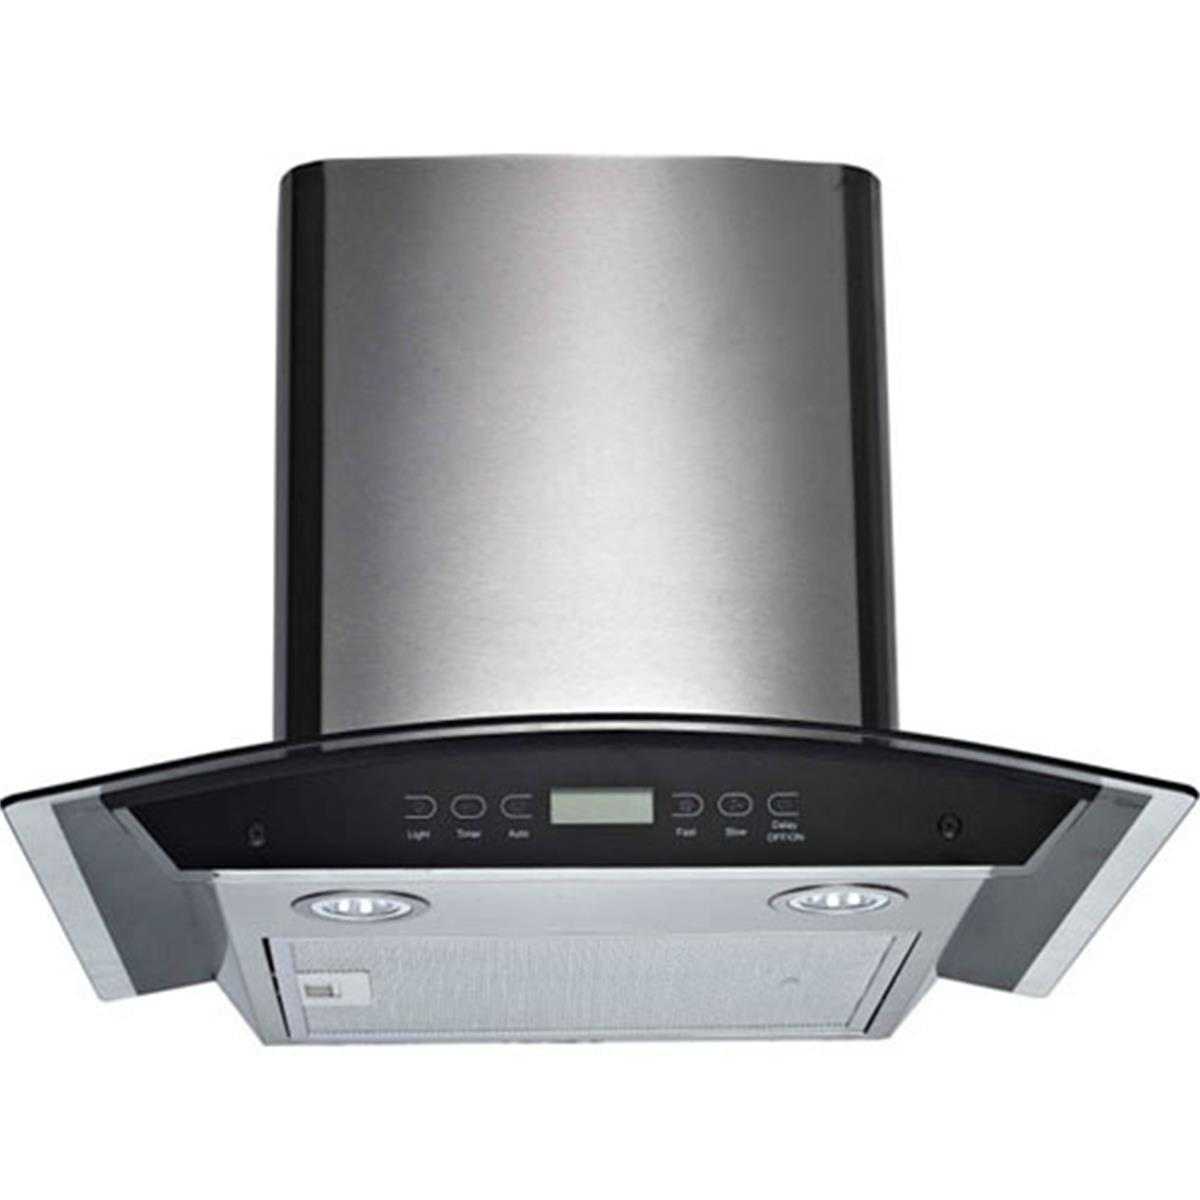 Hot sell in Pakistan range hood